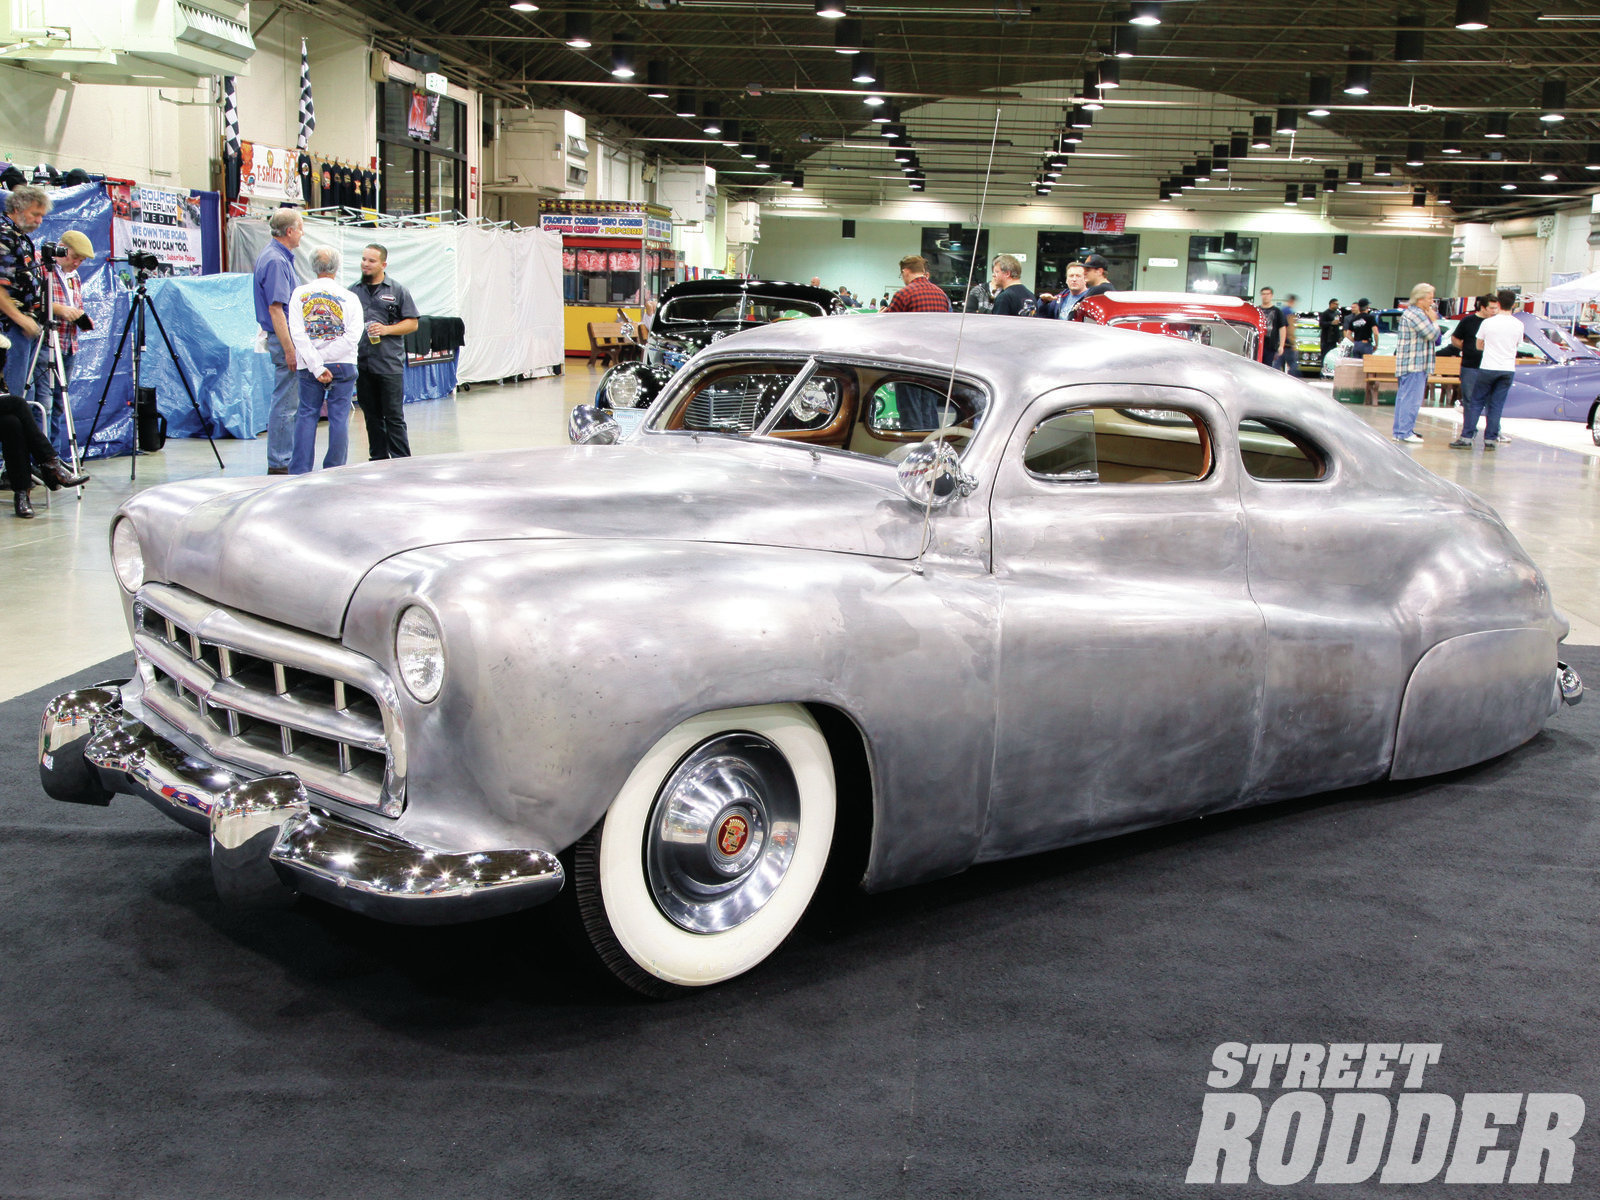 The Jack Stewart '41 Ford coupe was on display in bare metal. He purchased it in 1947 and then chopped the top and channeled the body the following year. Gil and Al Ayala rechopped the roof, added the fade-away front fenders, and the car was finished up by George Barris (after Bob Hirohata handcrafted a set of taillights for the car). It was sold, sold again in 1954, wrecked, sold (to a young Bob Drake in 1955), sold again in 2006, then sold again to its present owner Palle Johansen (who lives in Denmark), who is restoring the car to its 1951 appearance.